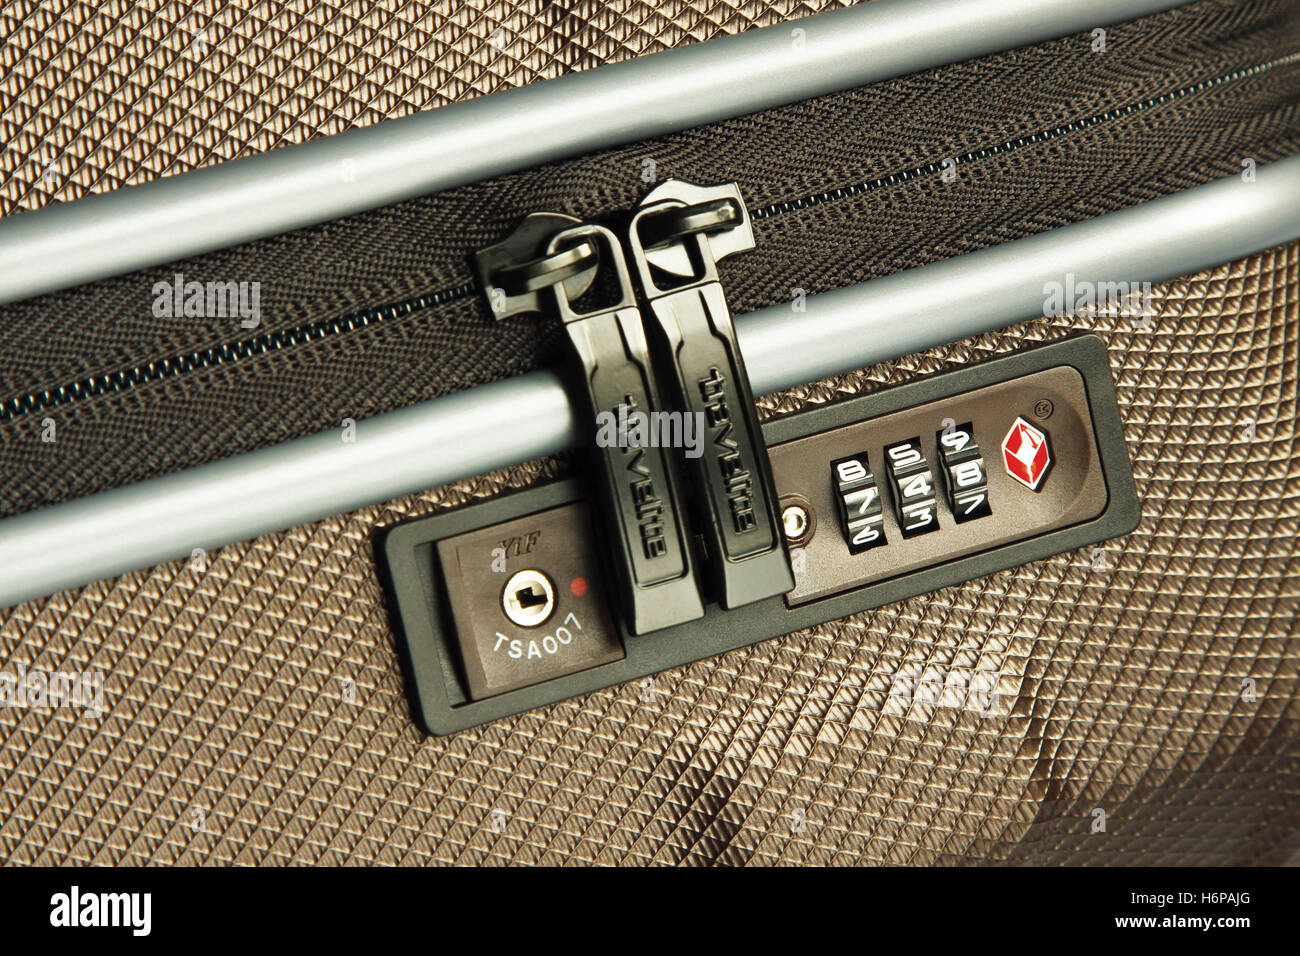 GDANSK, POLAND - SEPTEMBER 20, 2016. Baggage with TSA lock made by Travelite. - Stock Image